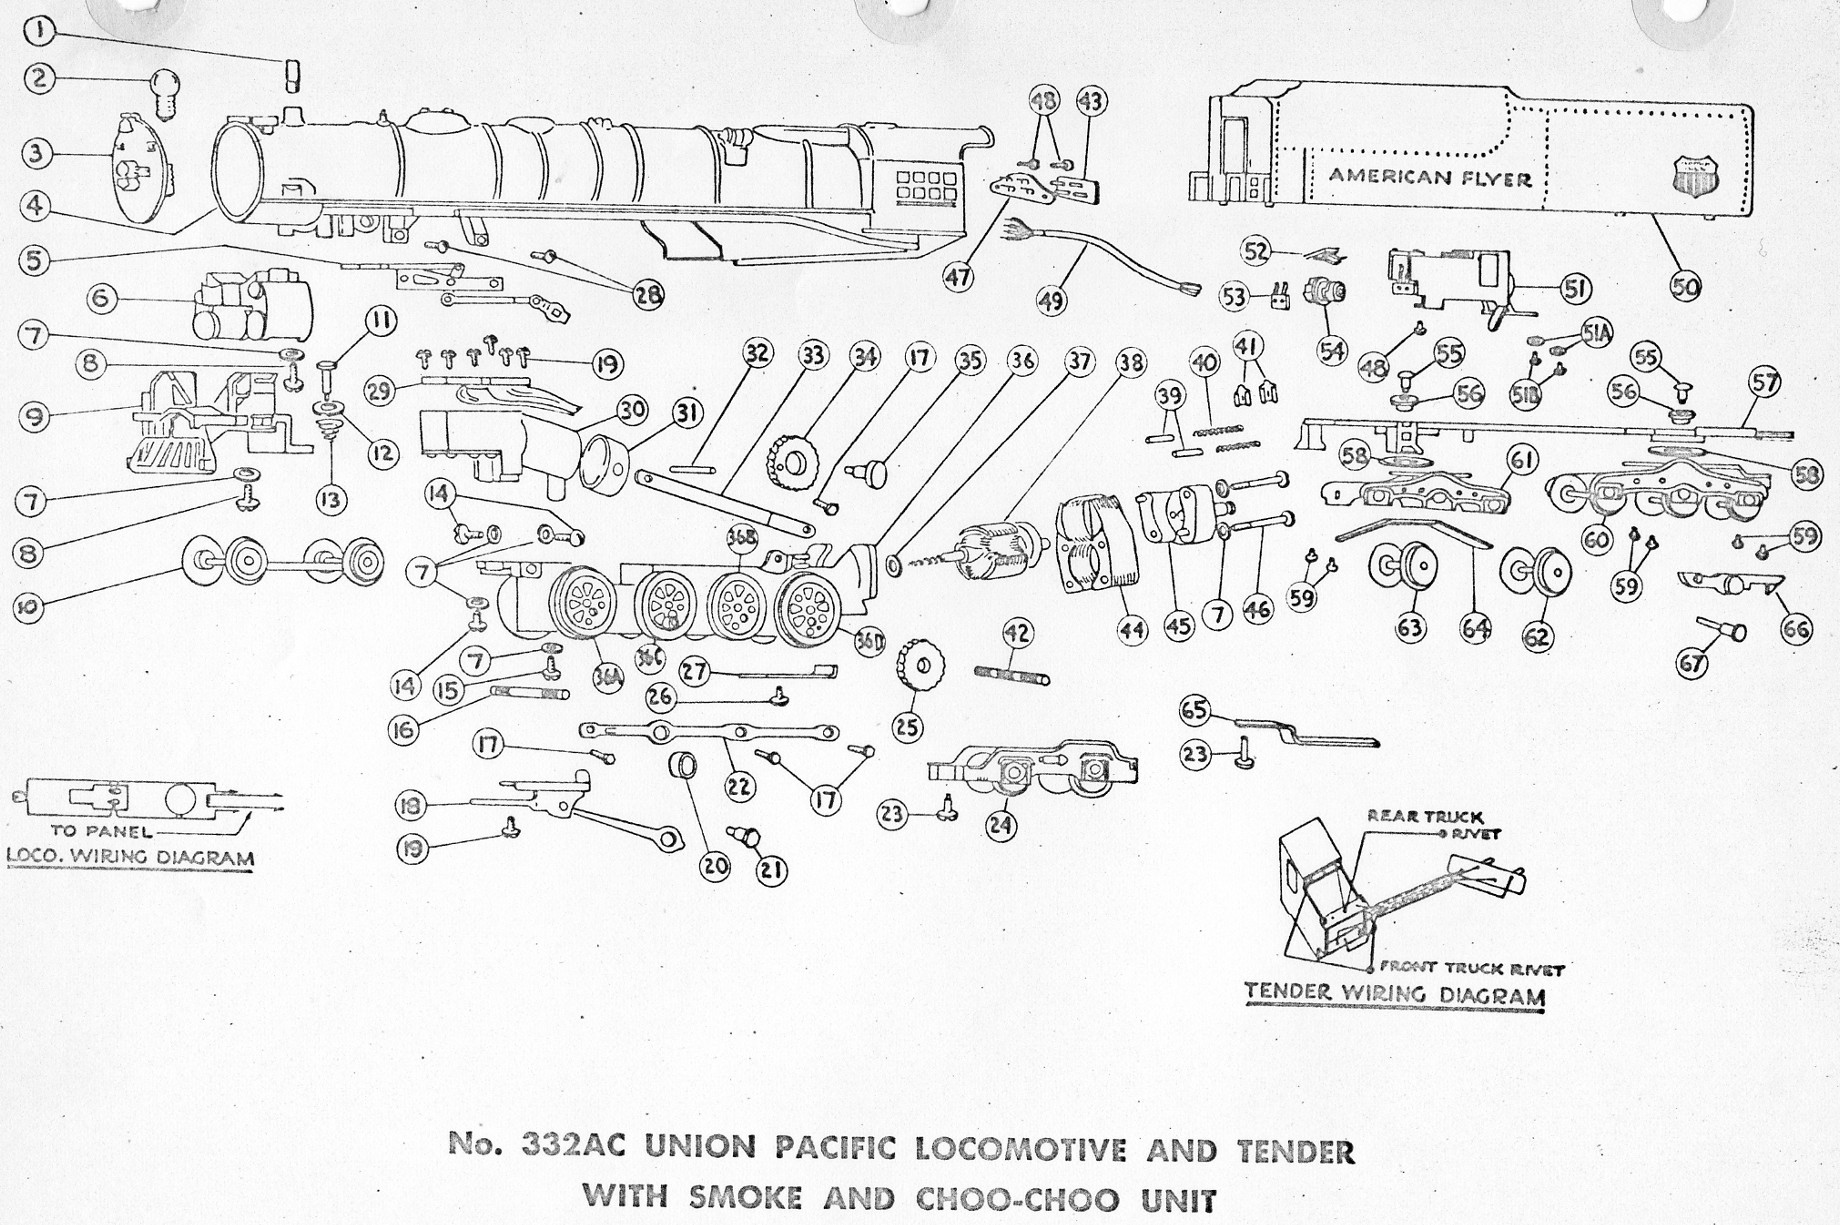 American Flyer Locomotive 332ac Parts List Amp Diagram